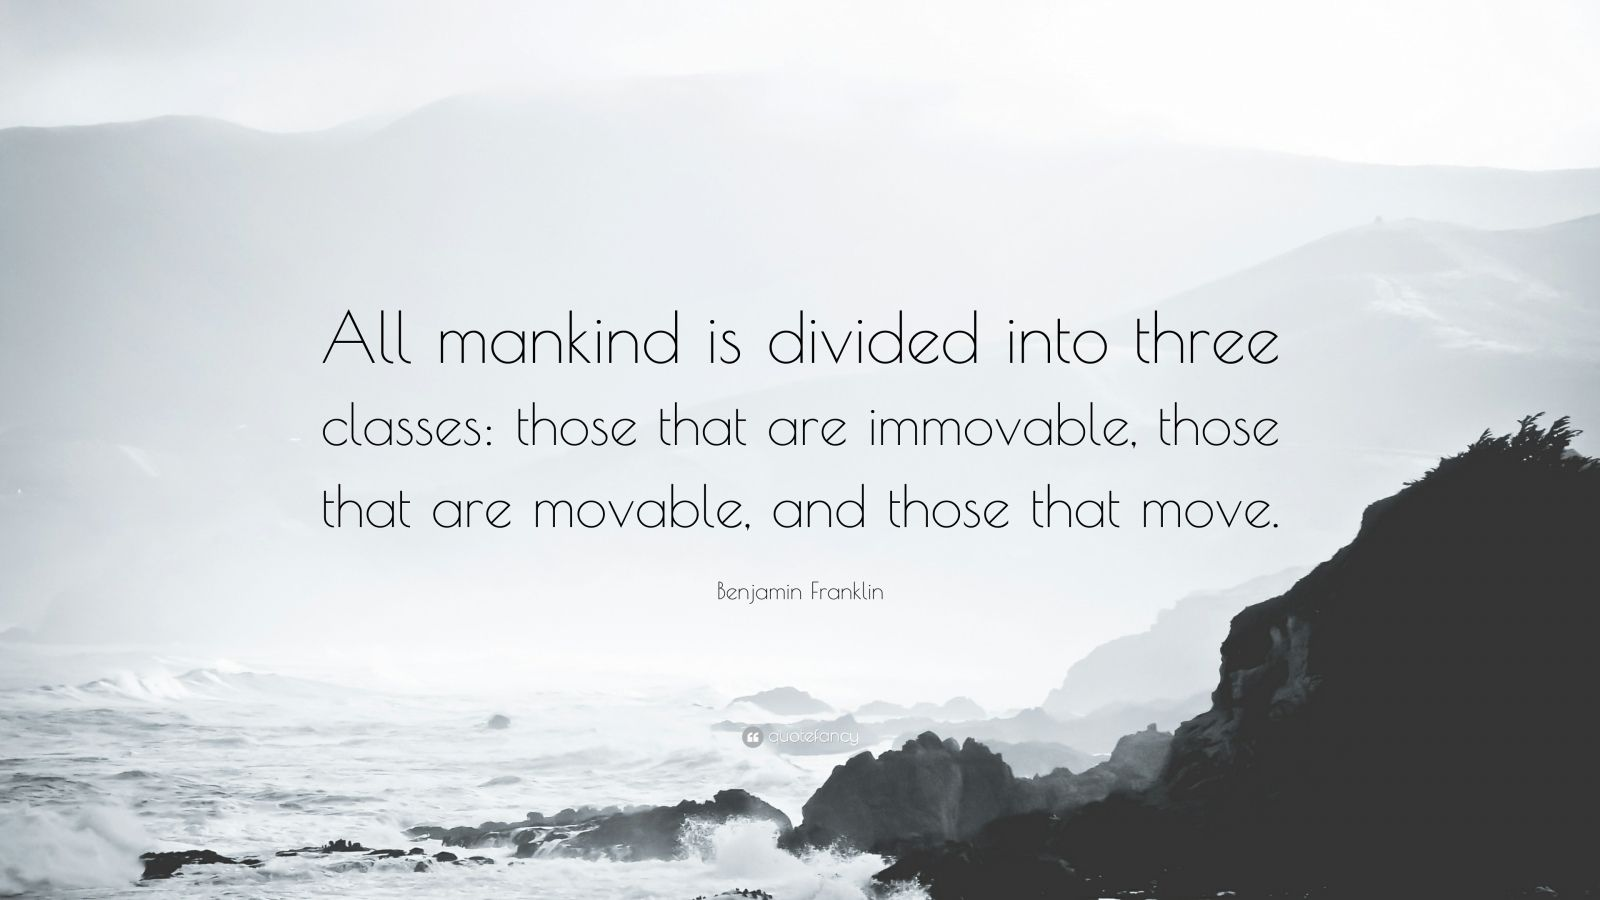 """Benjamin Franklin Quote: """"All mankind is divided into three classes: those that are immovable, those that are movable, and those that move."""""""